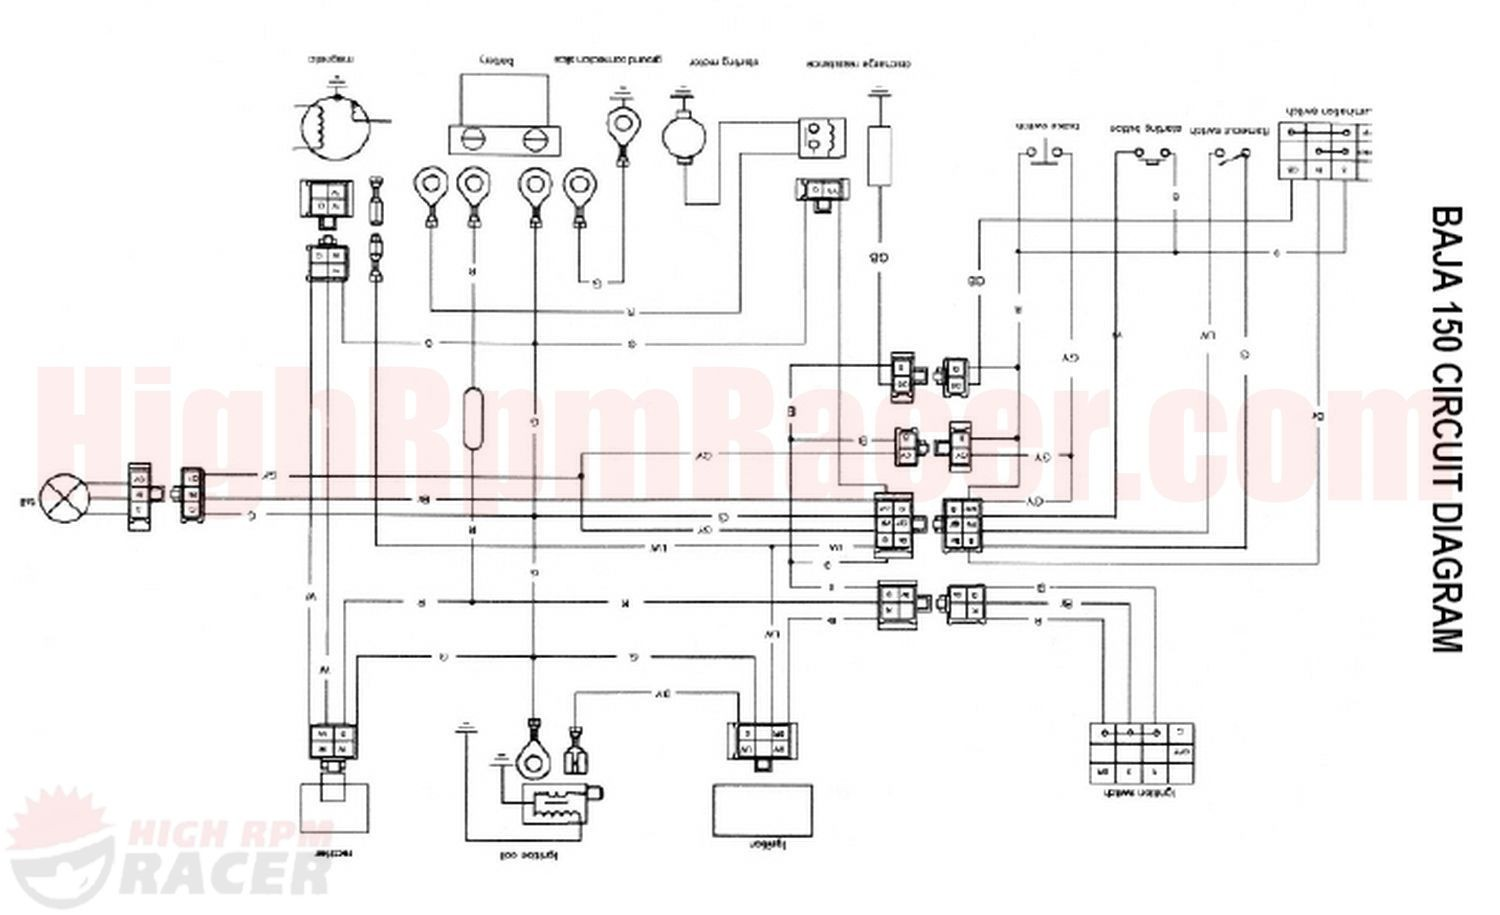 DF5FA23 2009 Tao Tao 110 Atv Wiring Diagram | Wiring ResourcesWiring Resources